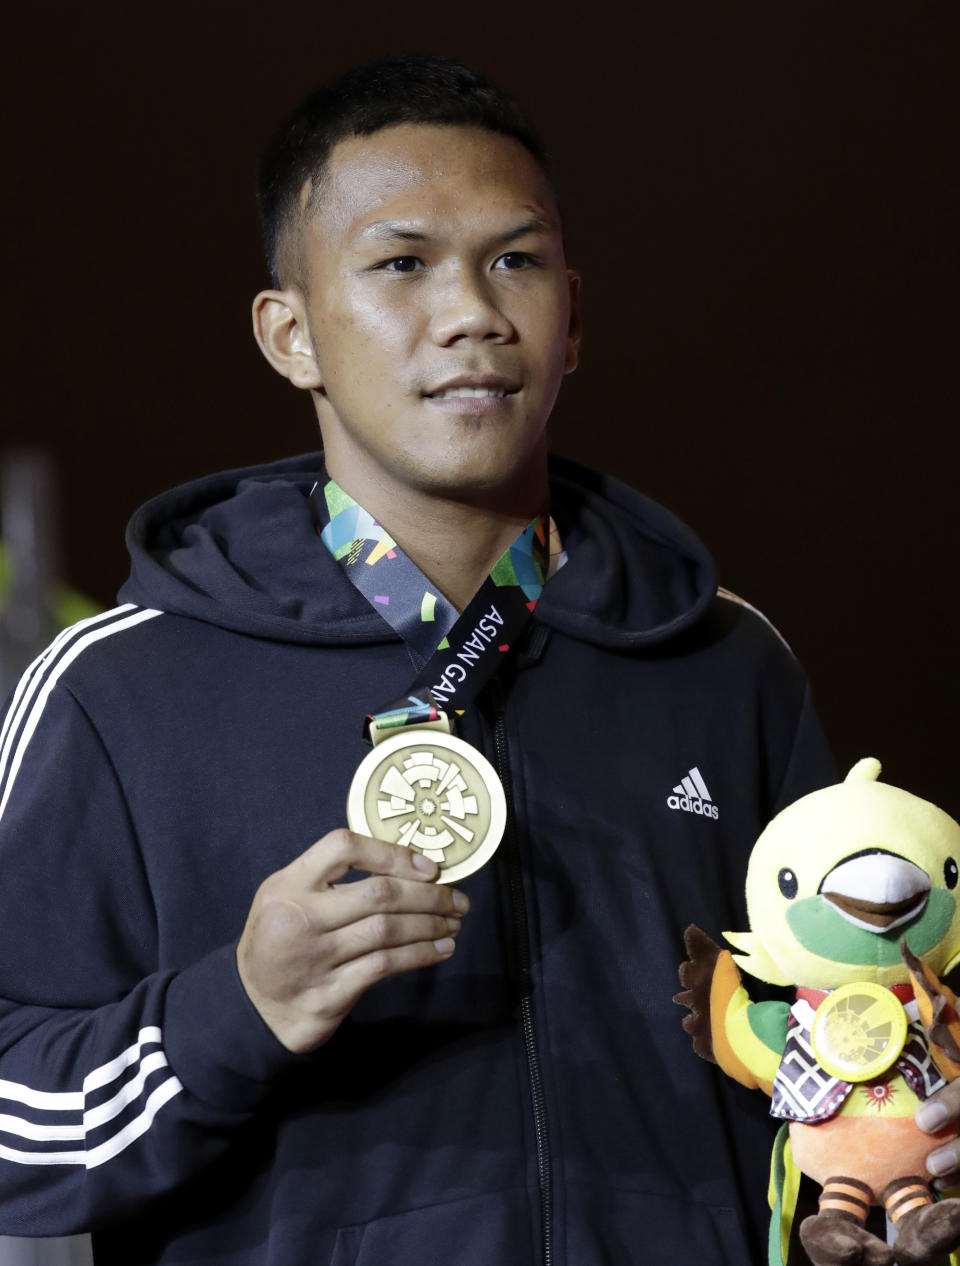 Men's middleweight bronze medalist Phillippines' Eumir Felix Marcial stands on the podium at the 18th Asian Games in Jakarta, Indonesia, Saturday, Sept. 1, 2018. (AP Photo/Lee Jin-man)